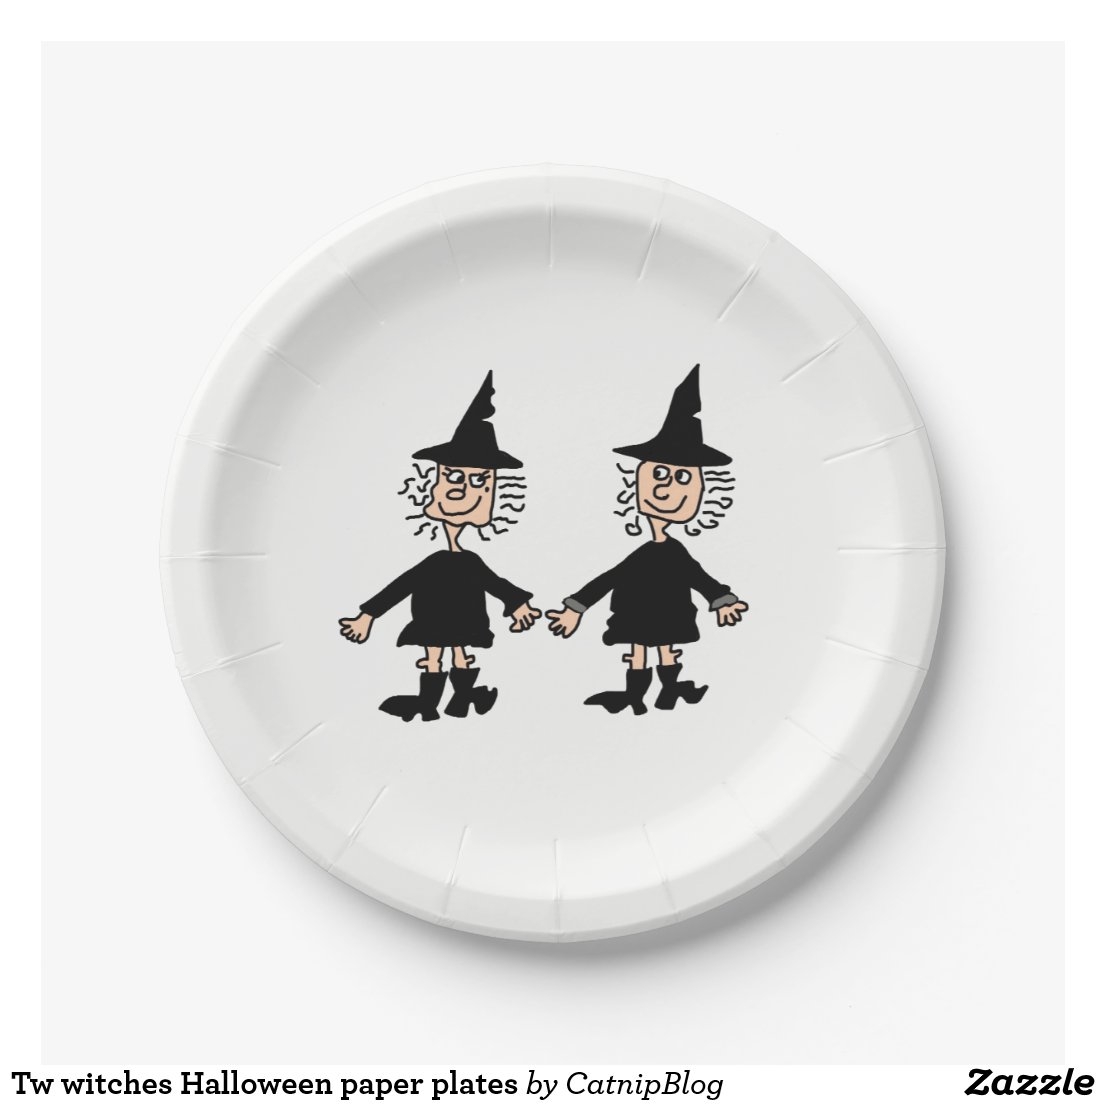 Tw witches Halloween paper plates